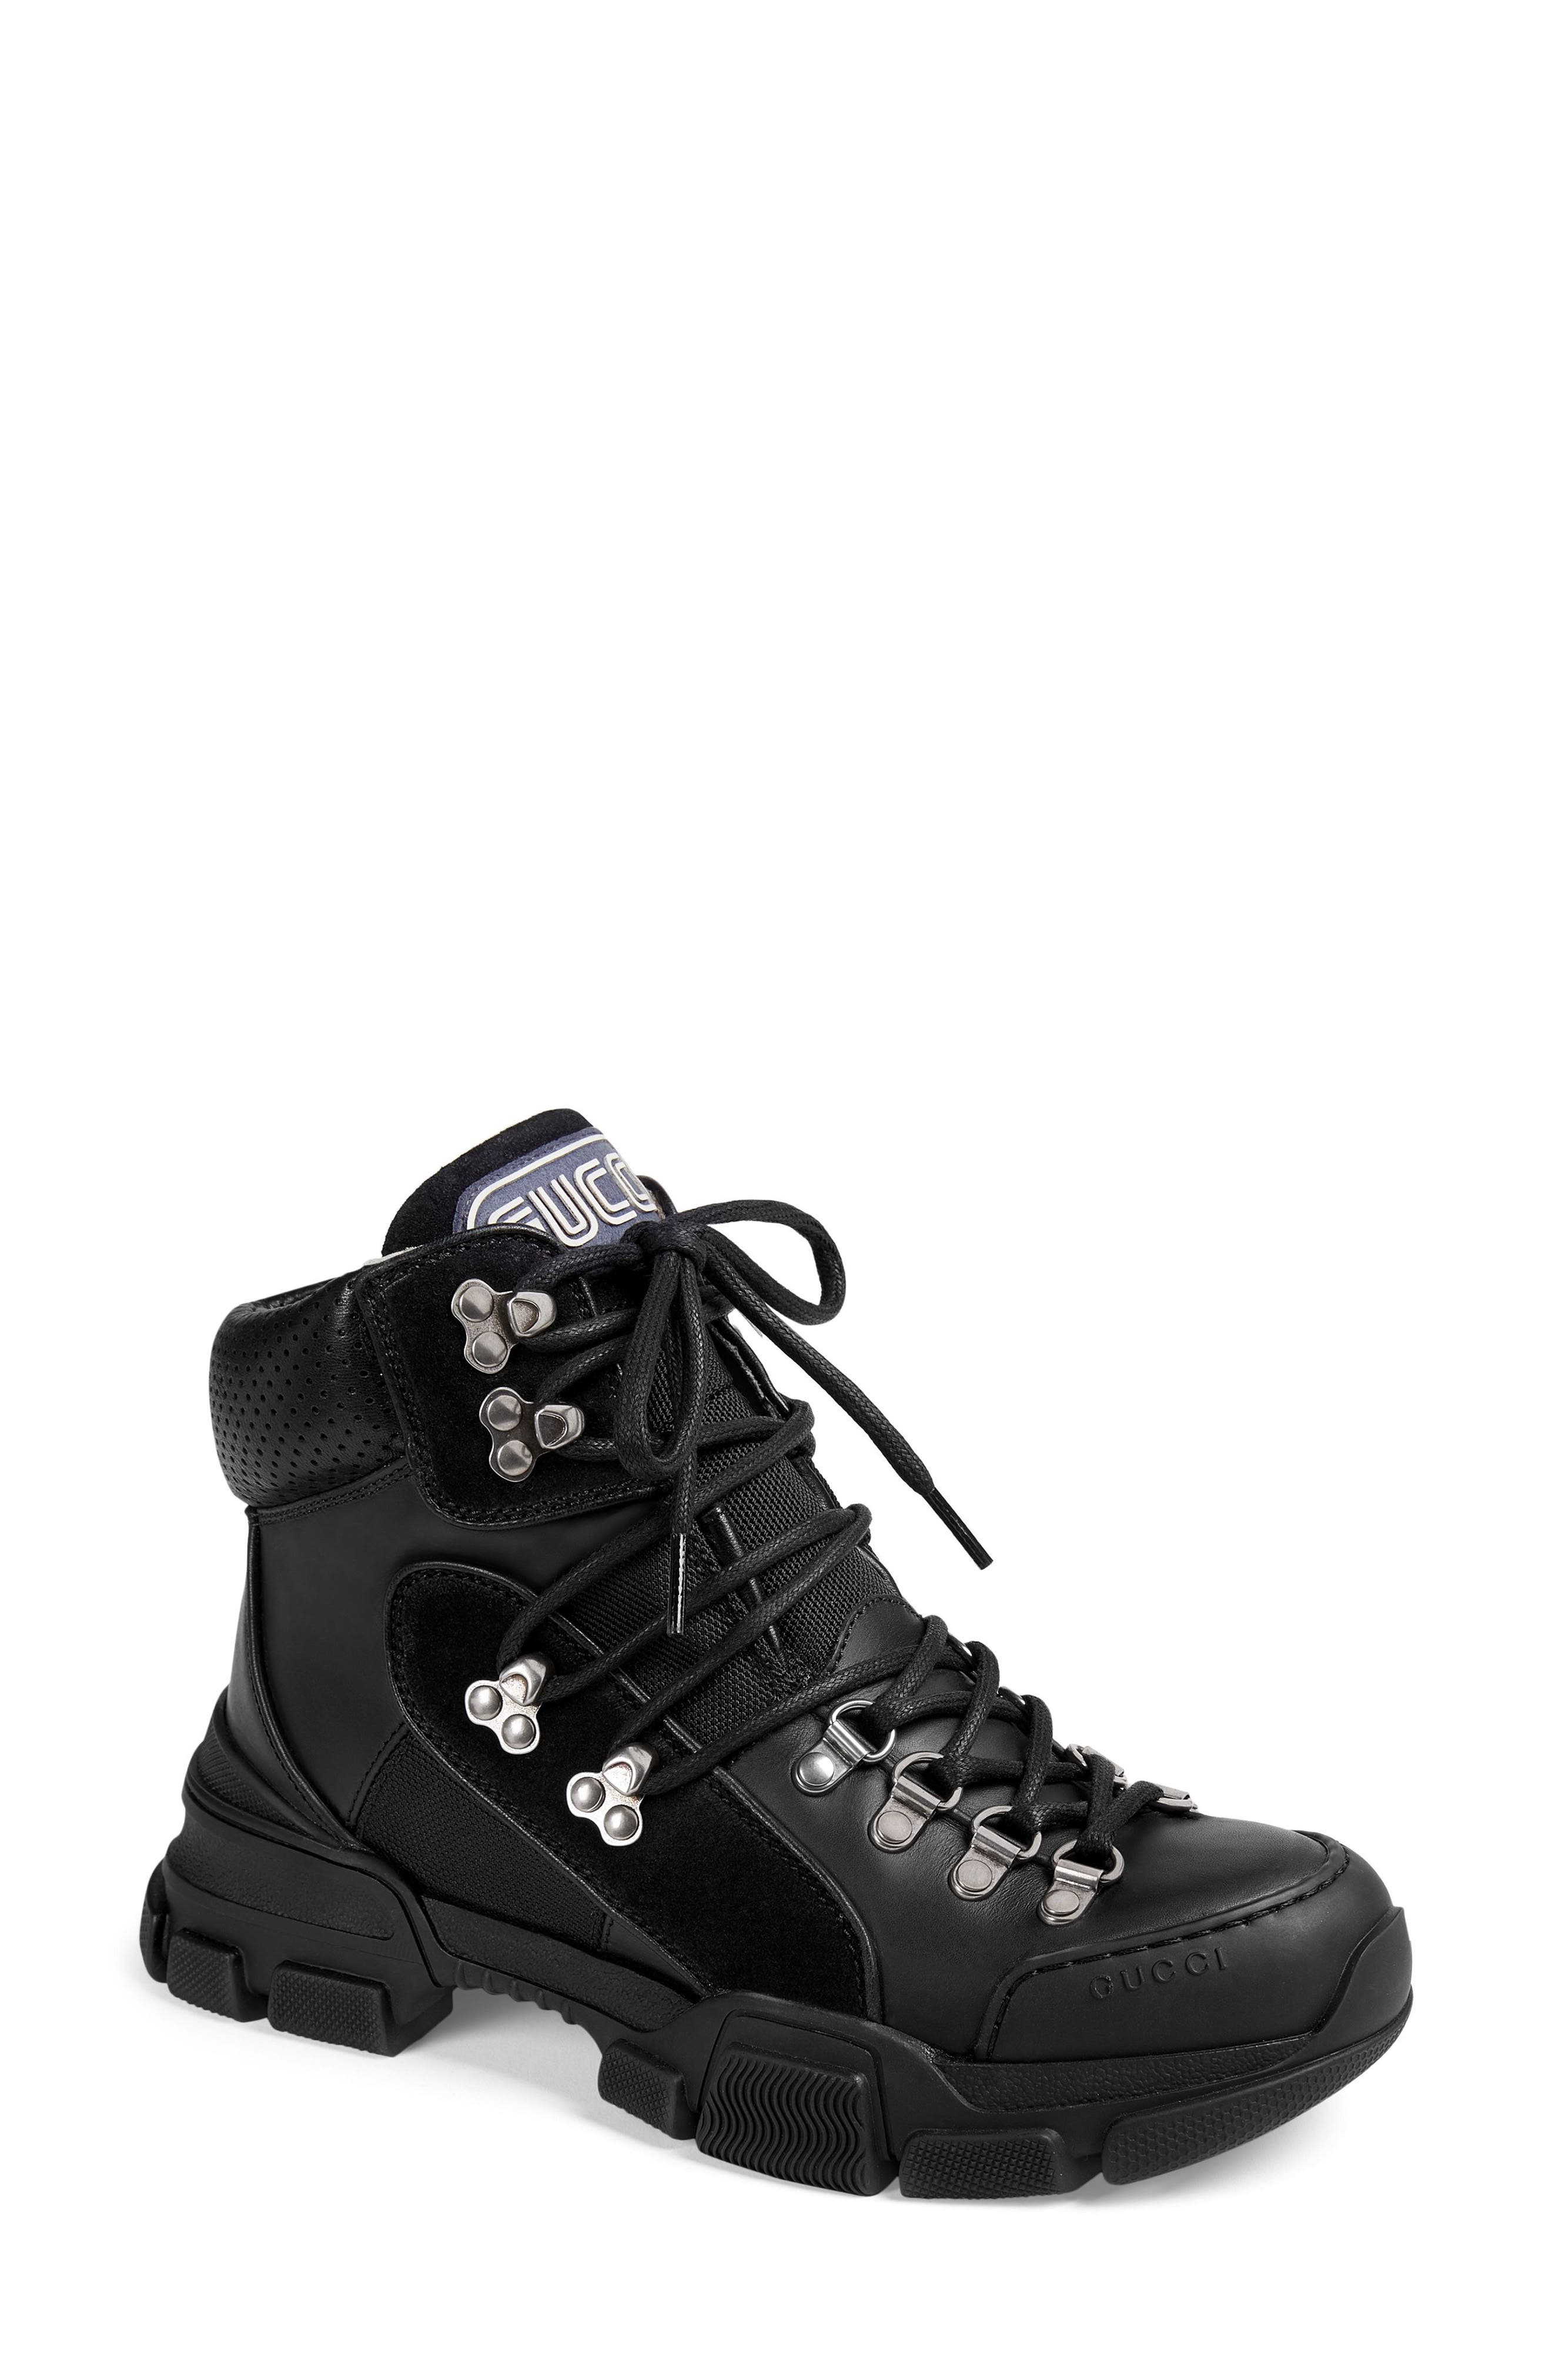 Gucci Lace-Up Boot, Black